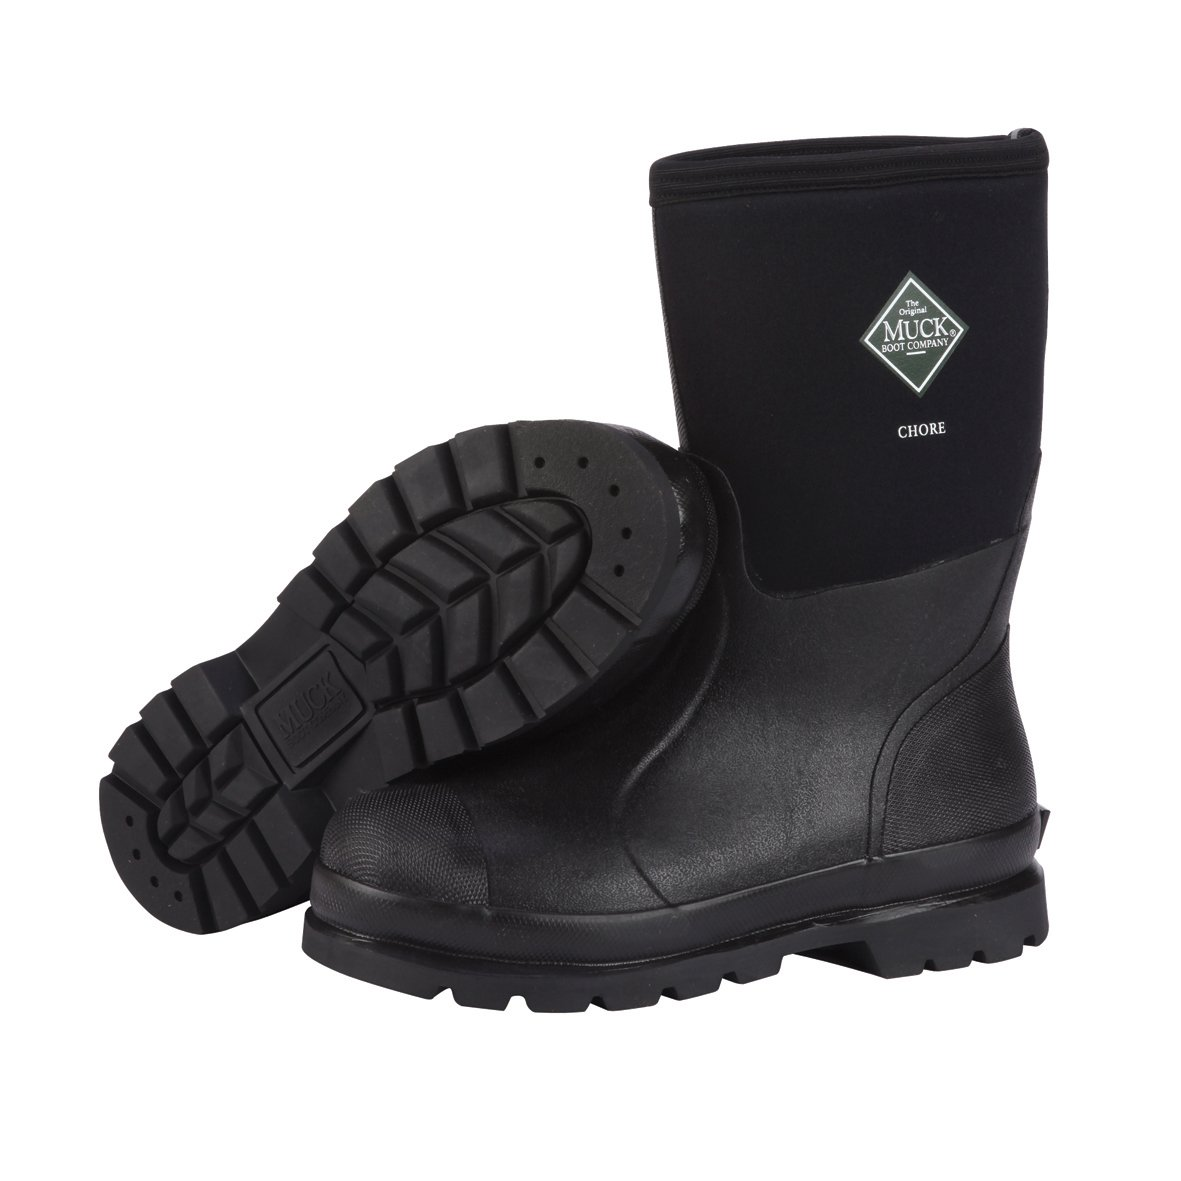 The Original MuckBoots Adult Chore Mid Boot,Black,Men's 13 M/Women's 14 M by Muck Boot